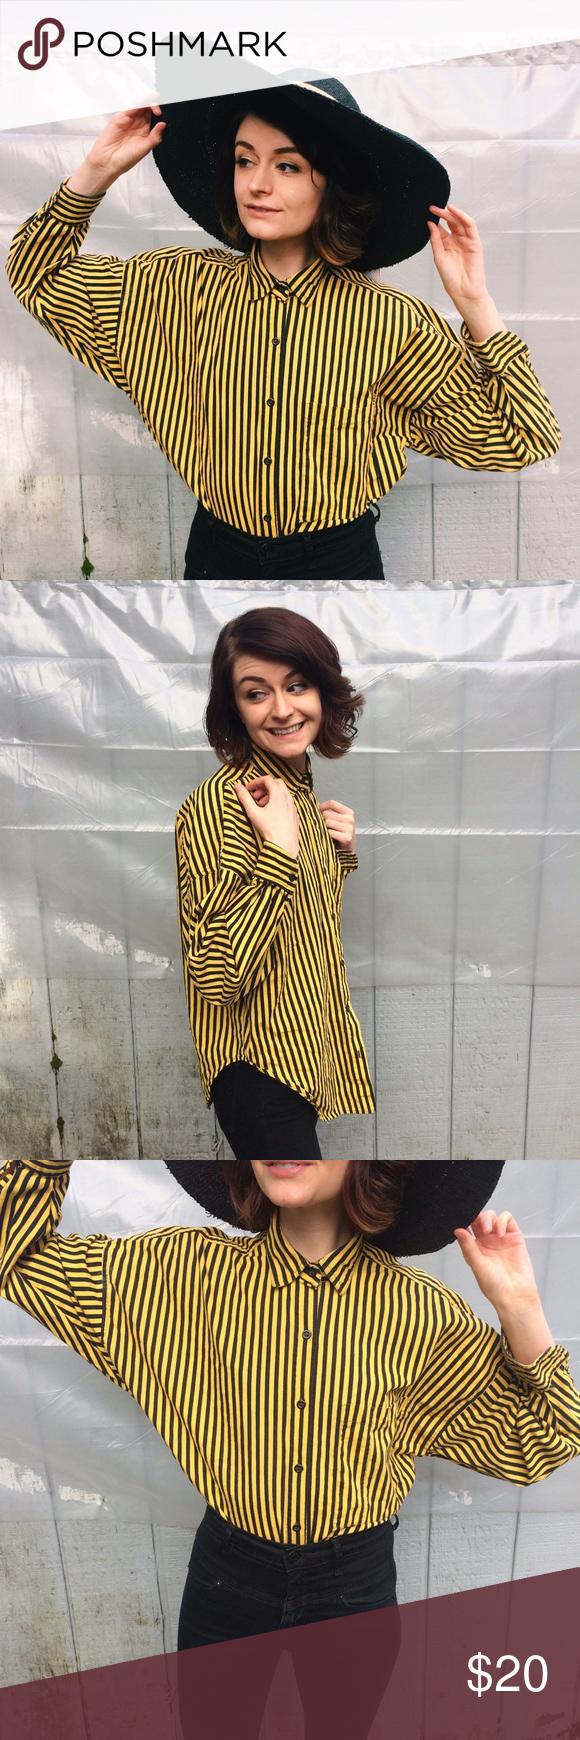 a6a72b665c Vintage Bumble Bee Yellow &a Black Striped Shirt Look at how PERFECT this  shirt is!! Make yourself standout with this beetle juice esque piece!